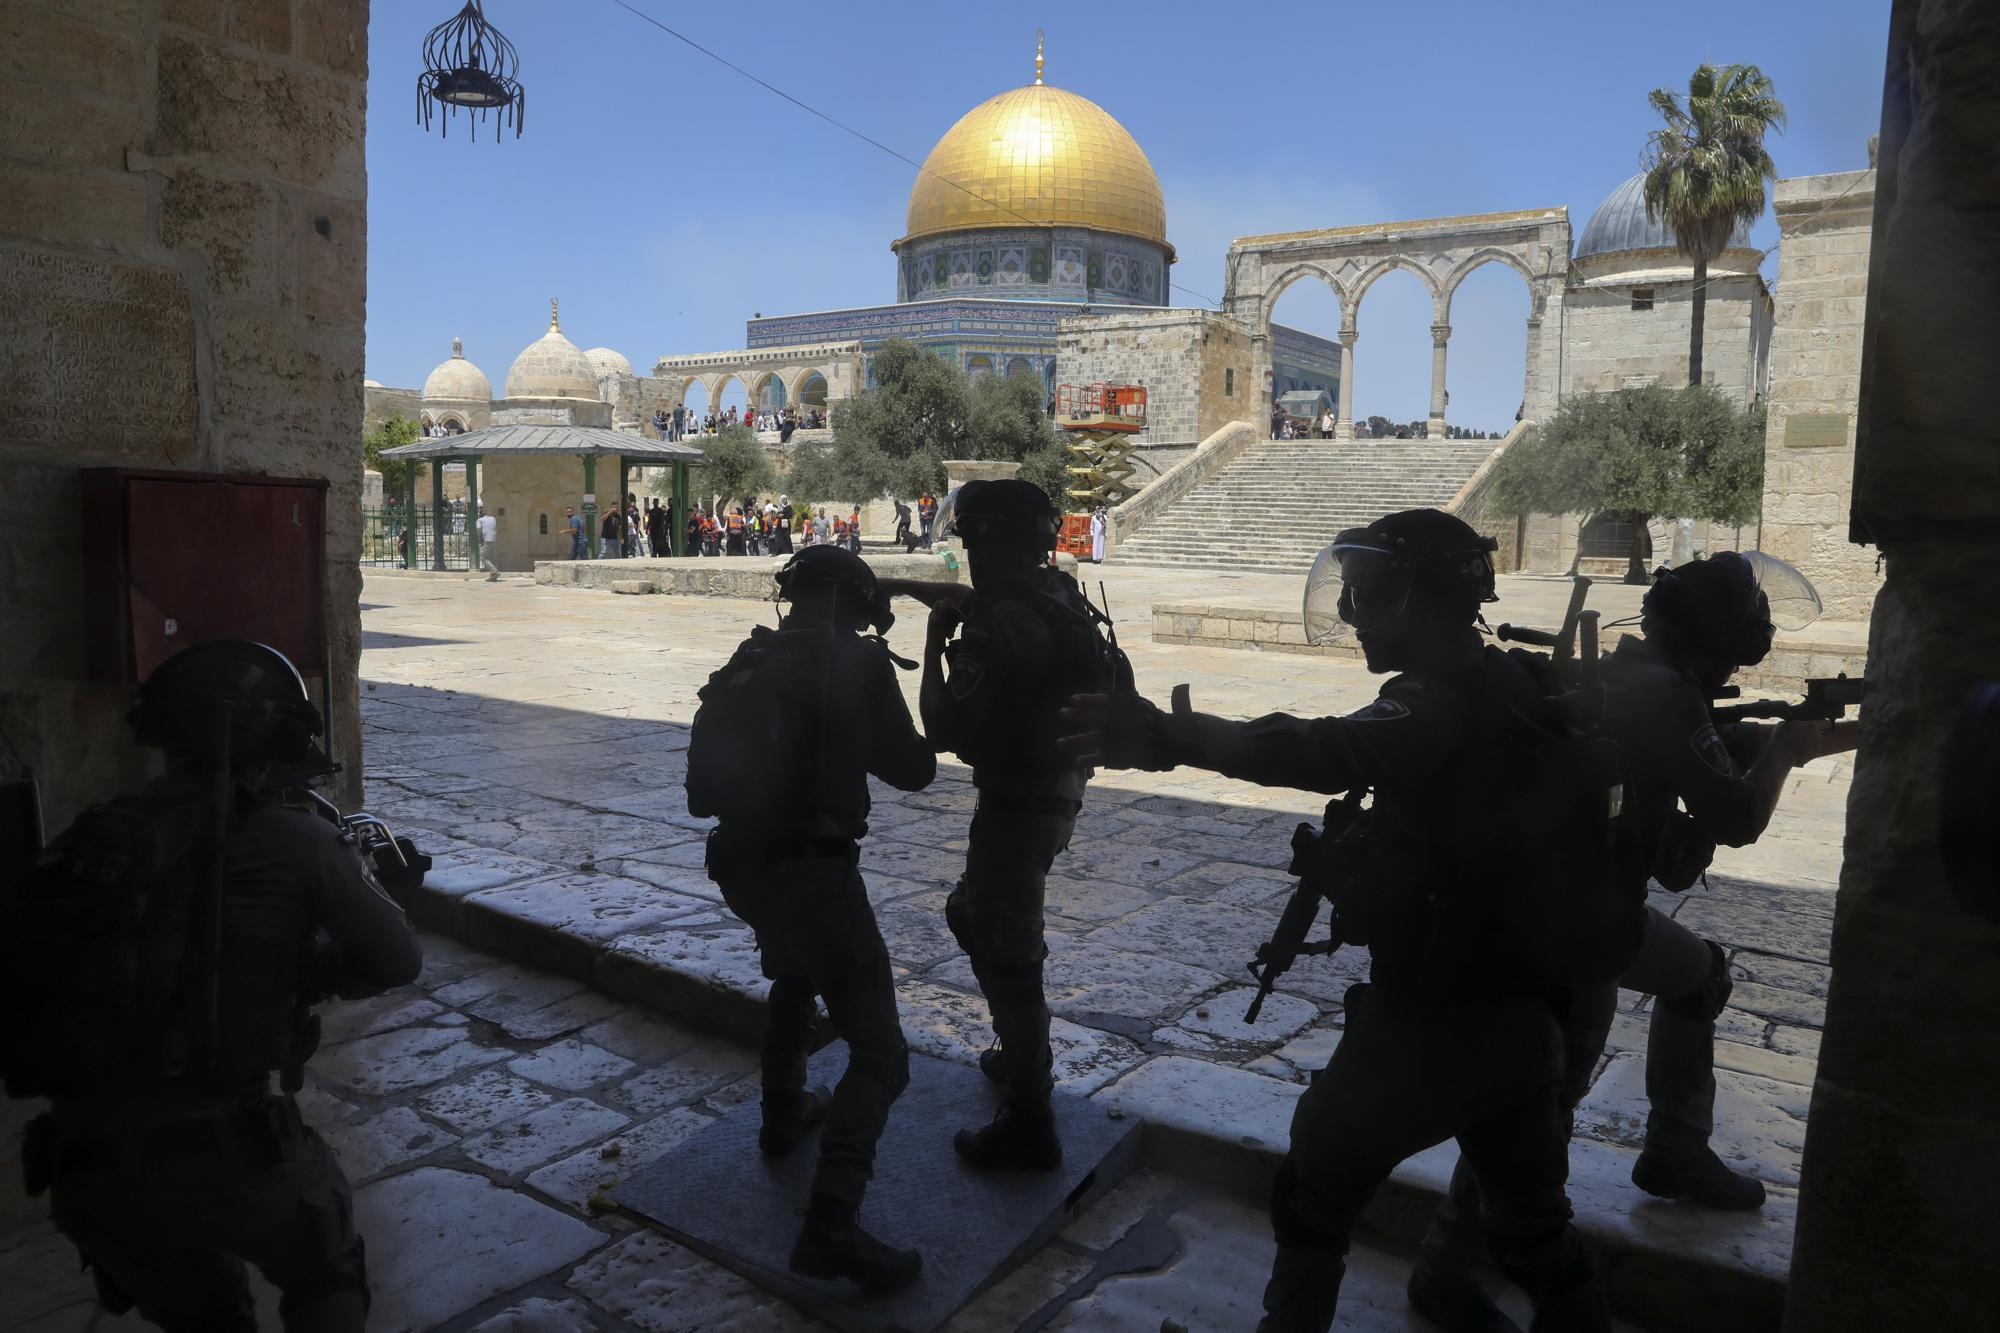 Israeli security forces take positions during clashes with Palestinians in front of the Dome of the Rock Mosque at the Al Aqsa Mosque compound in Jerusalem's Old City, Friday, June 18, 2021. (AP Photo/Mahmoud Illean)